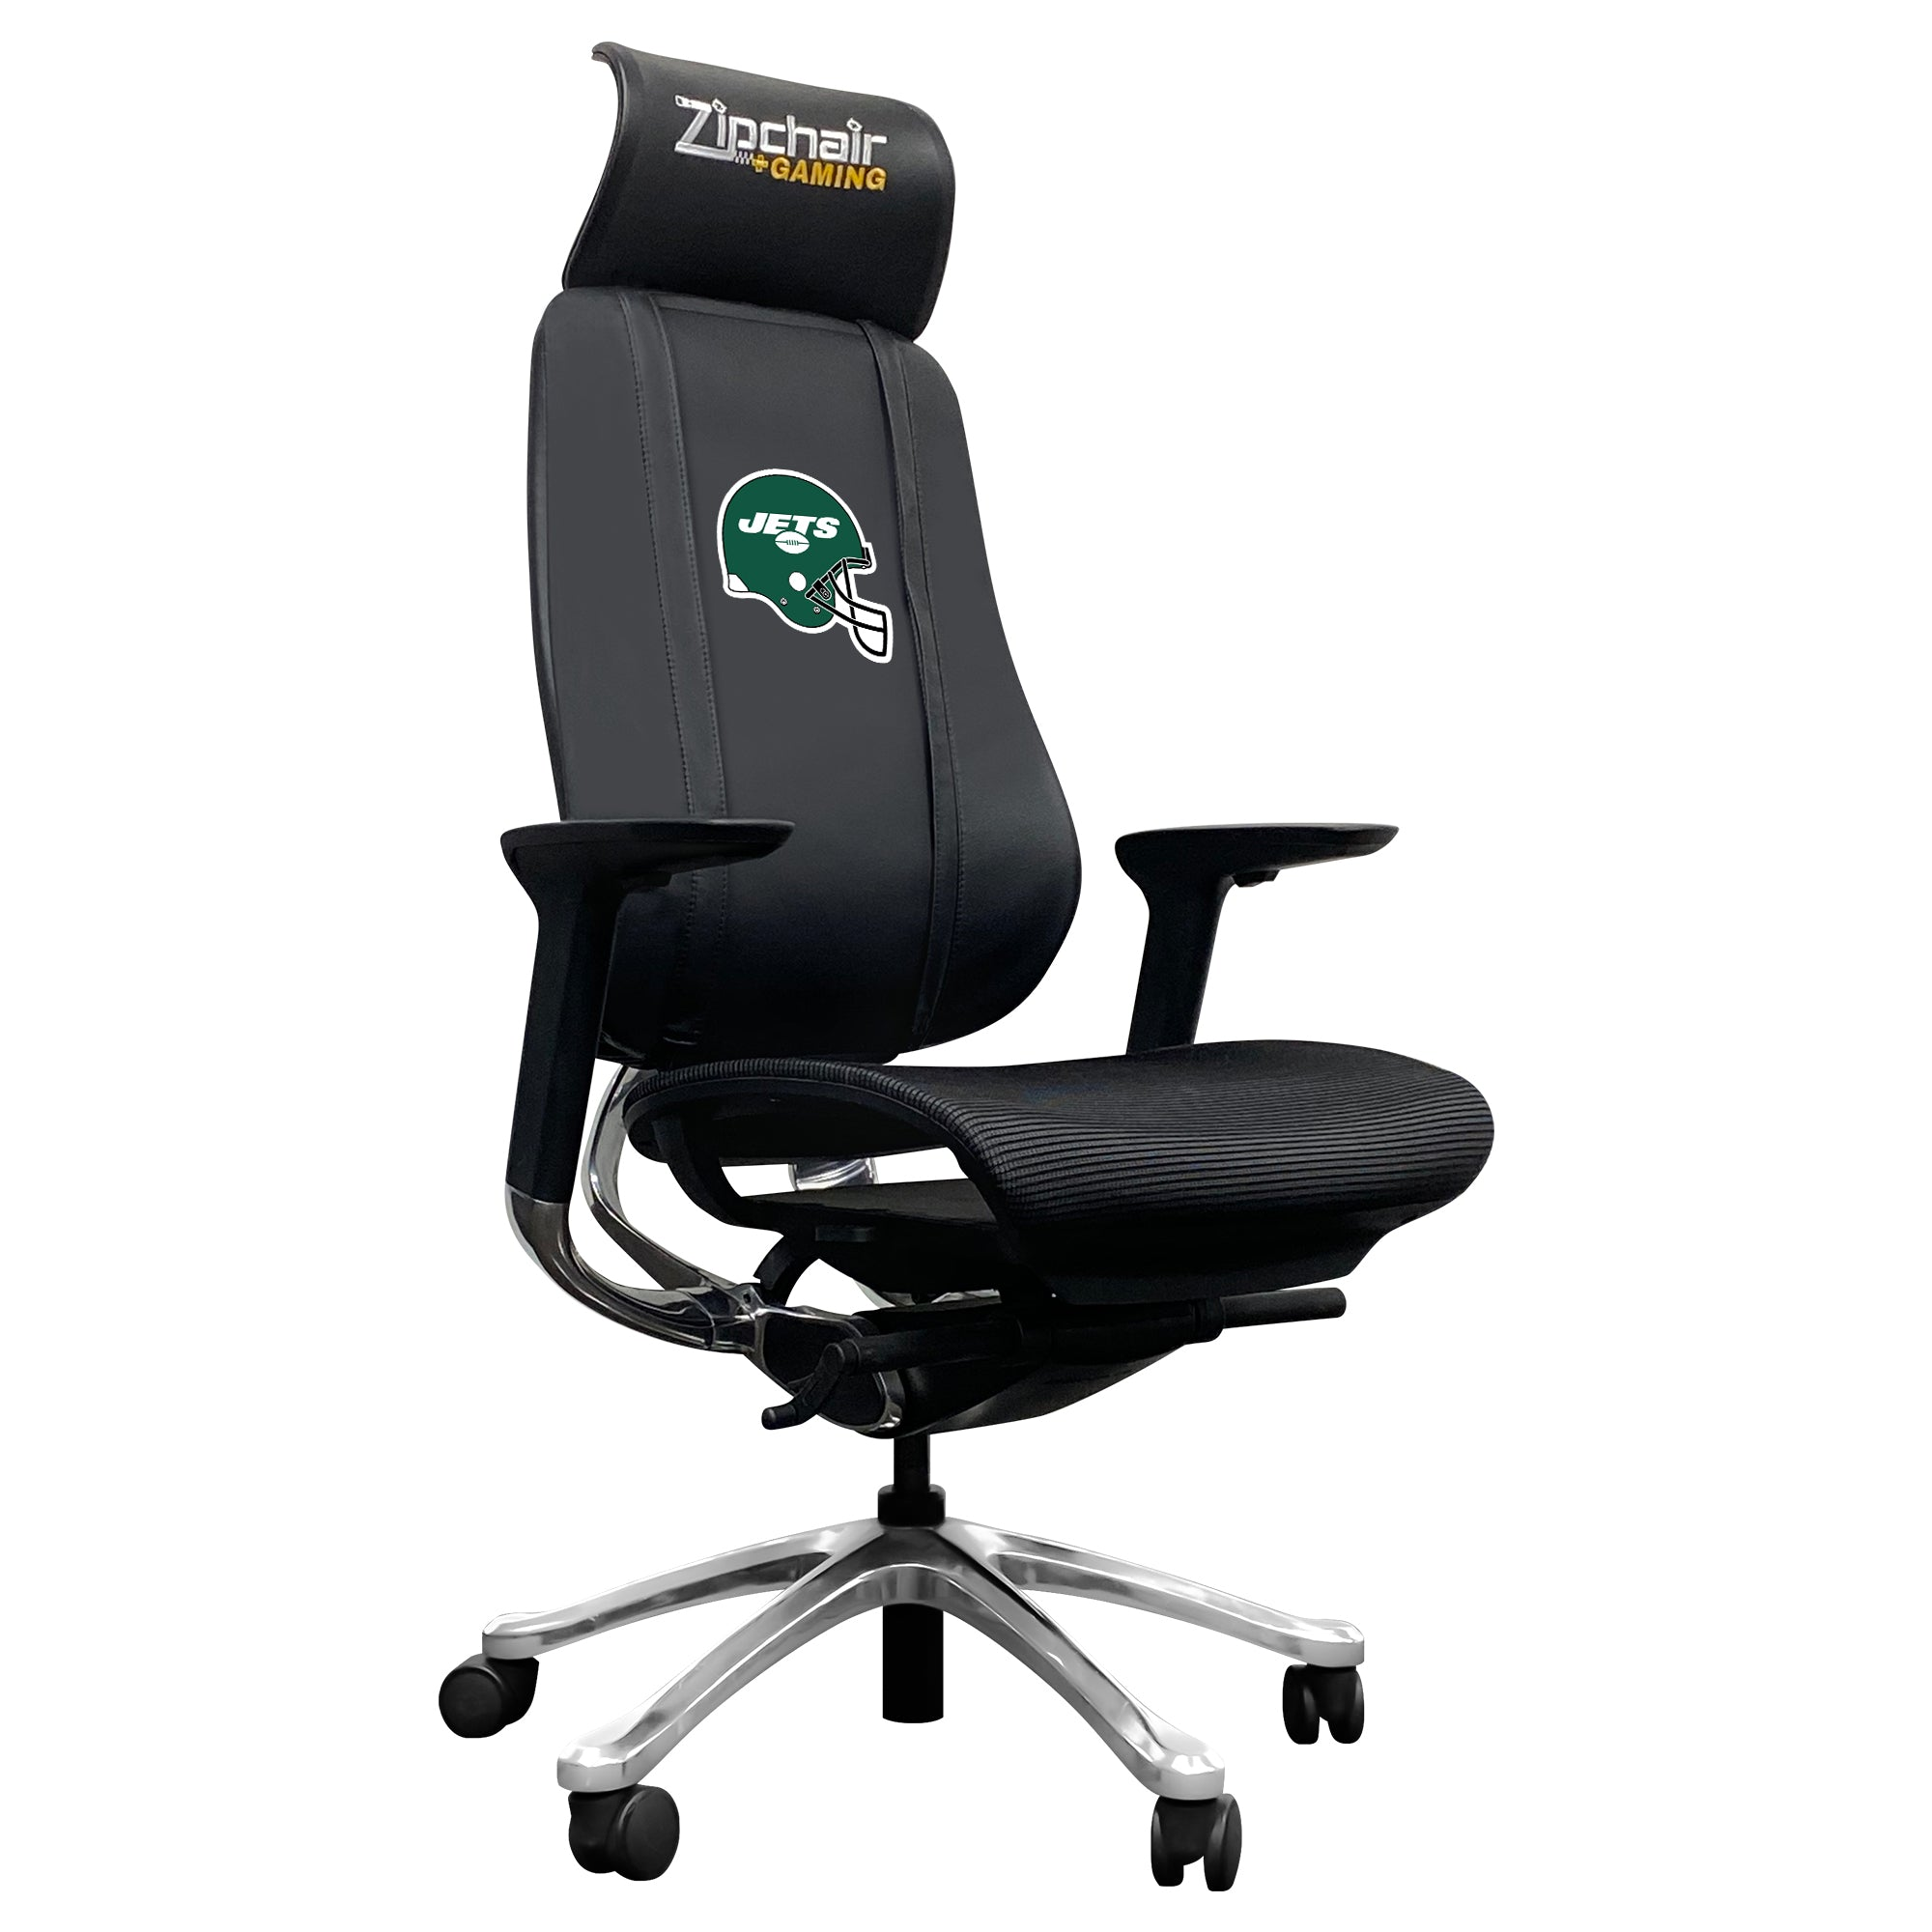 PhantomX Mesh Gaming Chair with  New York Jets Helmet Logo